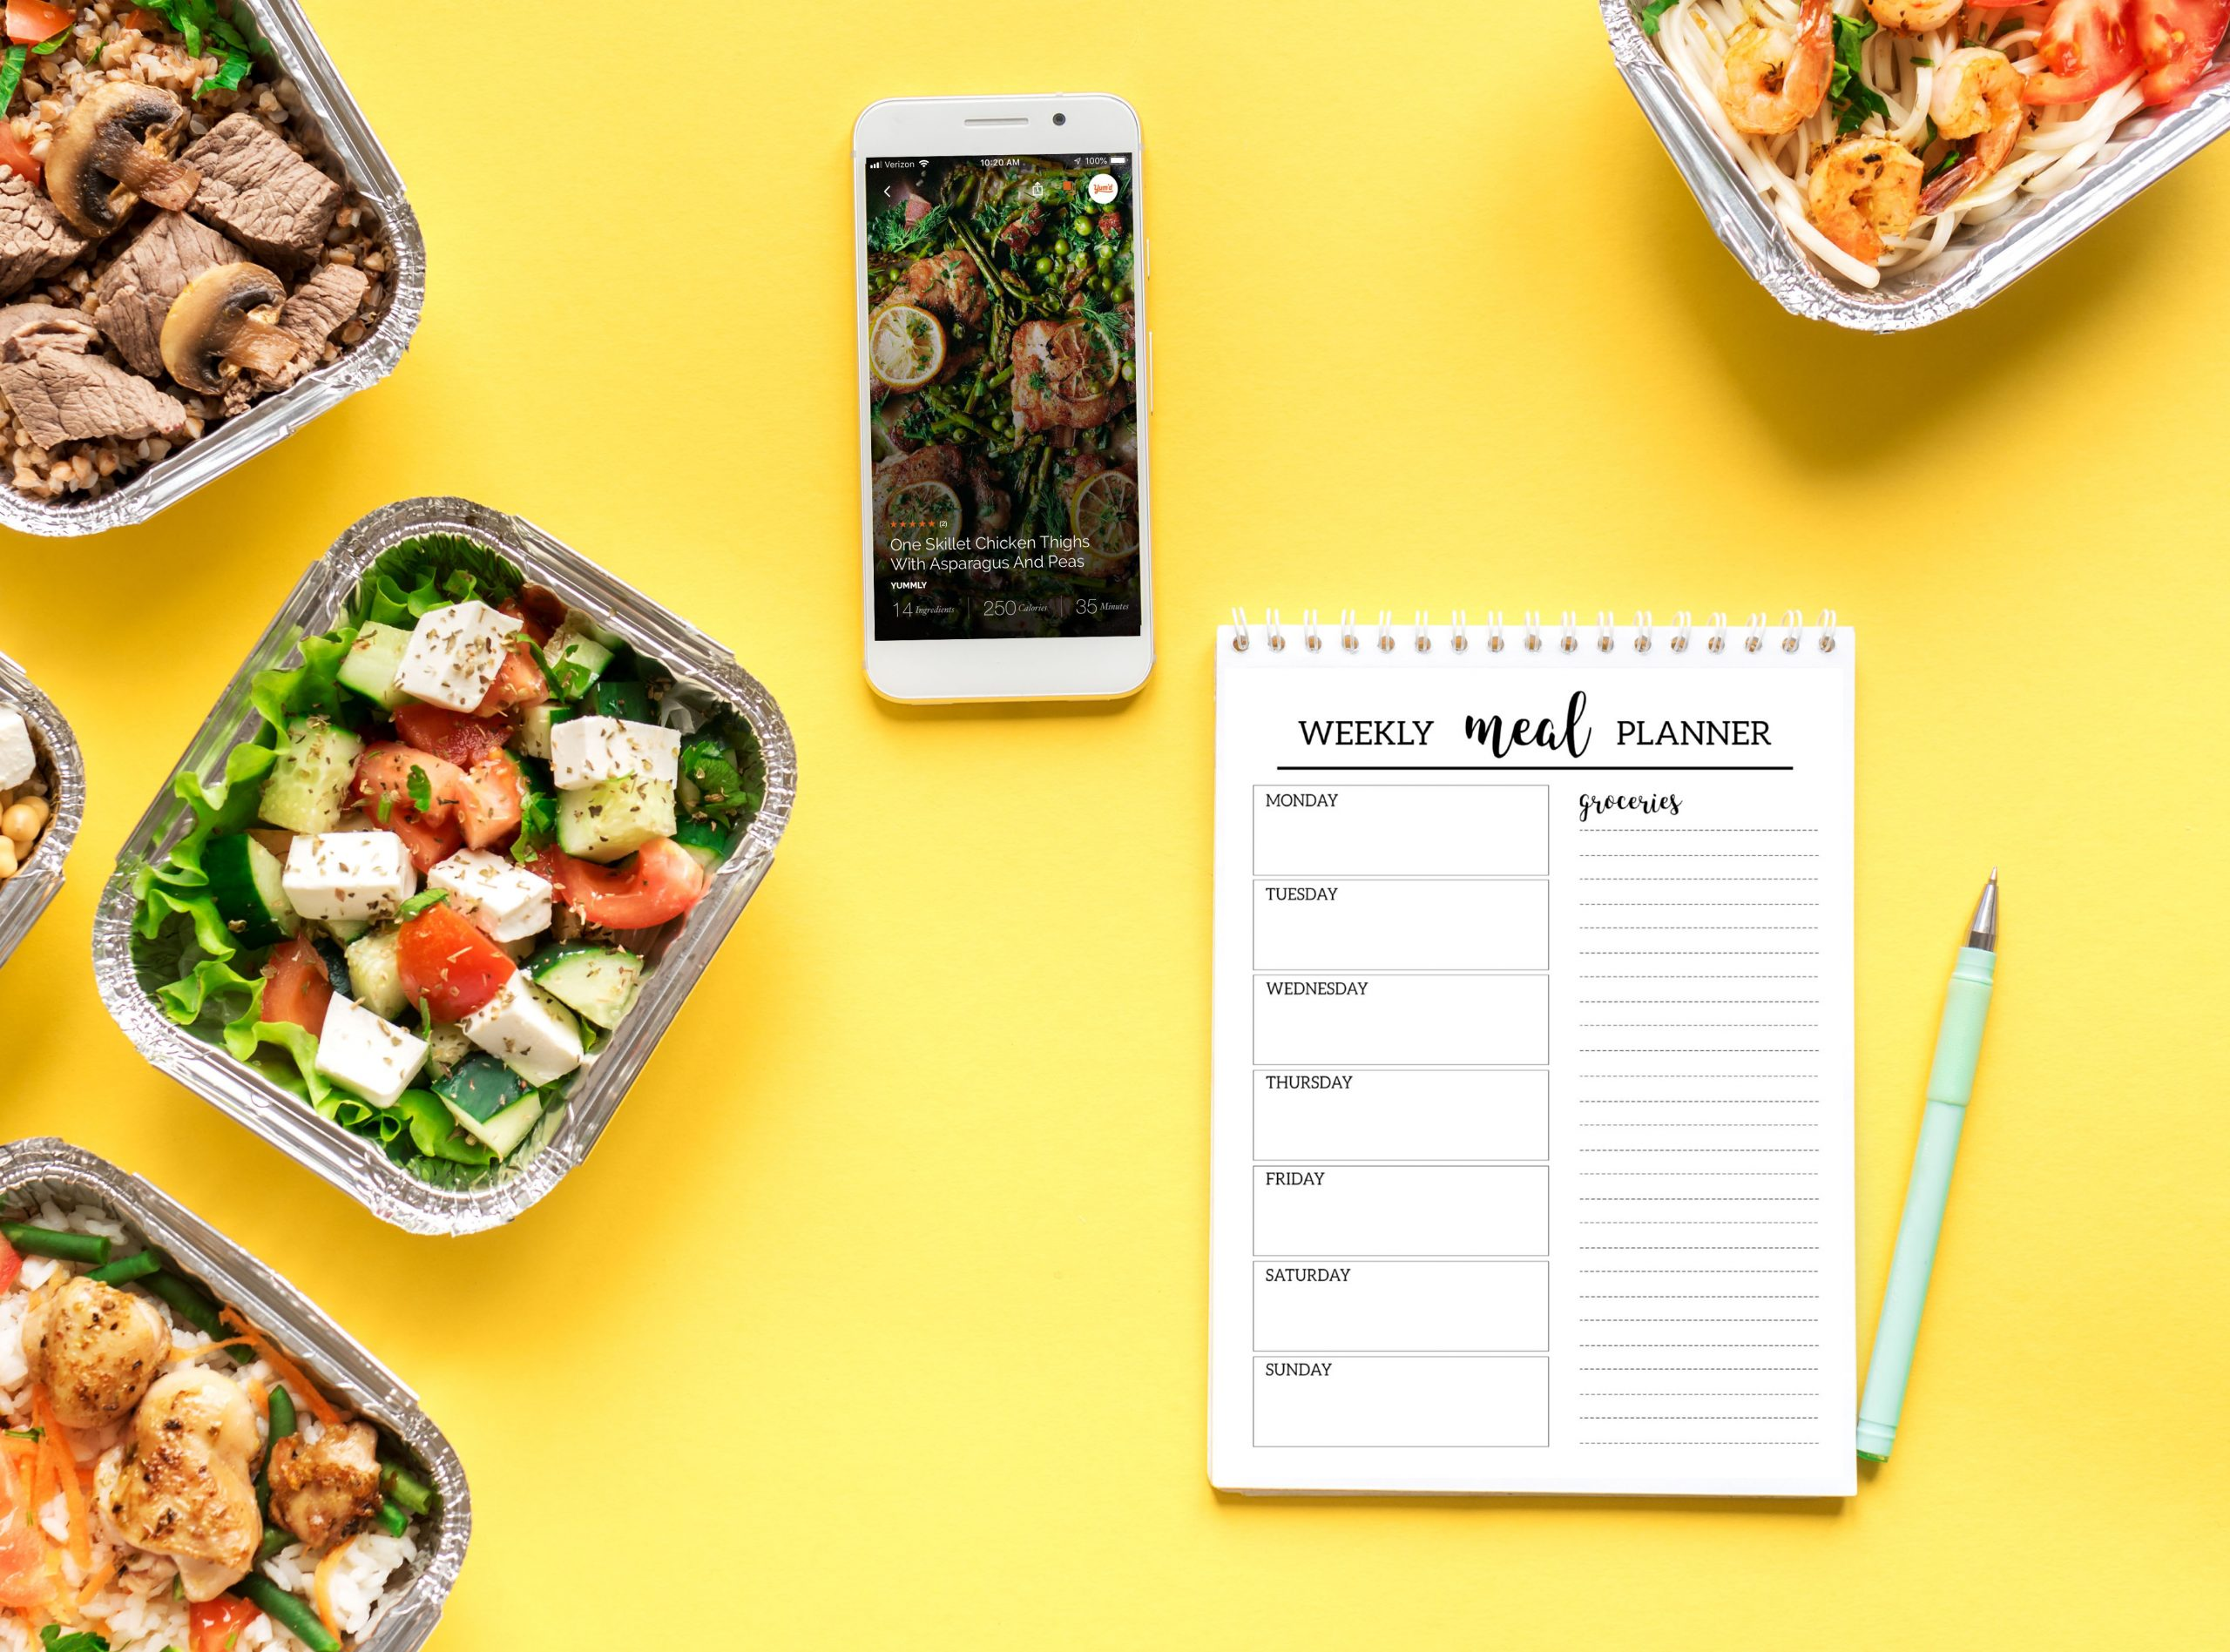 Intuitive Eating and Meal Planning